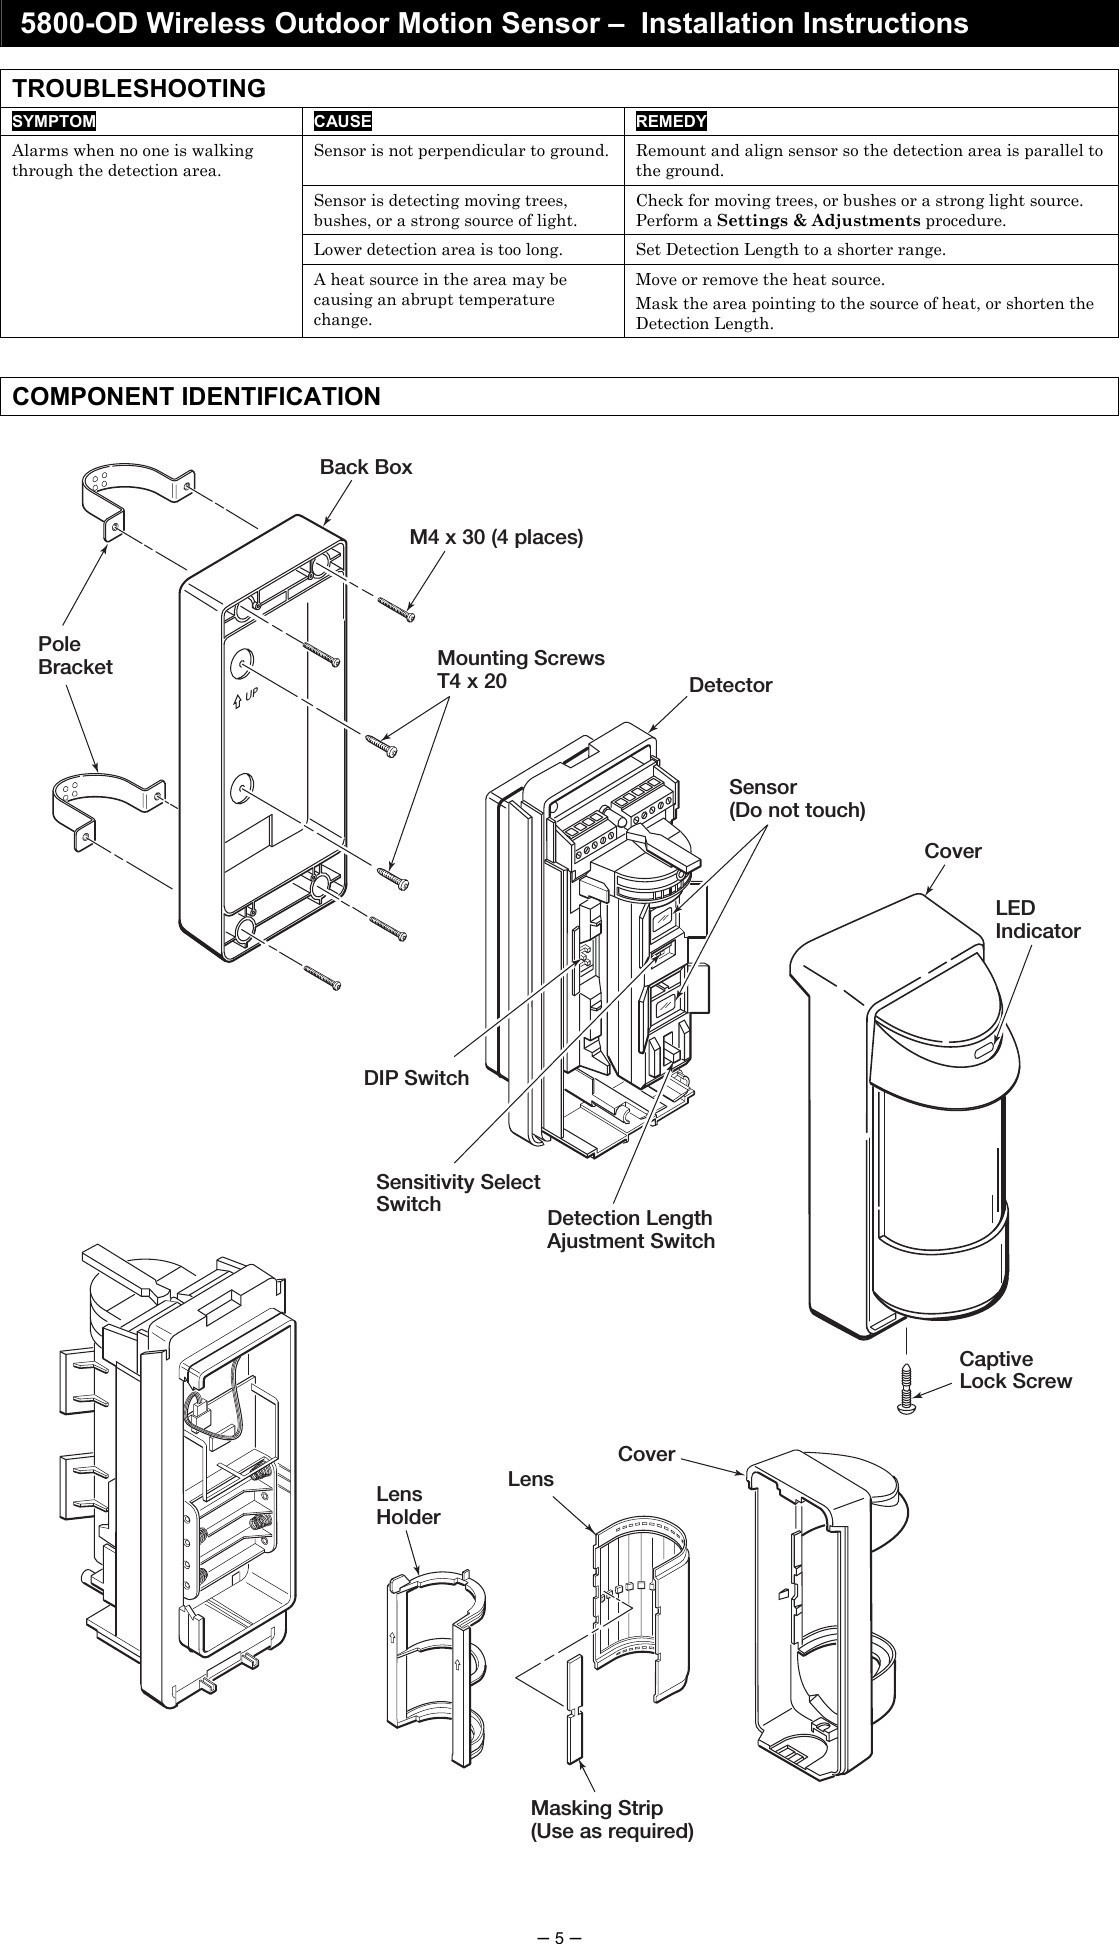 Bulldog Security Wiring Diagrams Conventional Fire Alarm